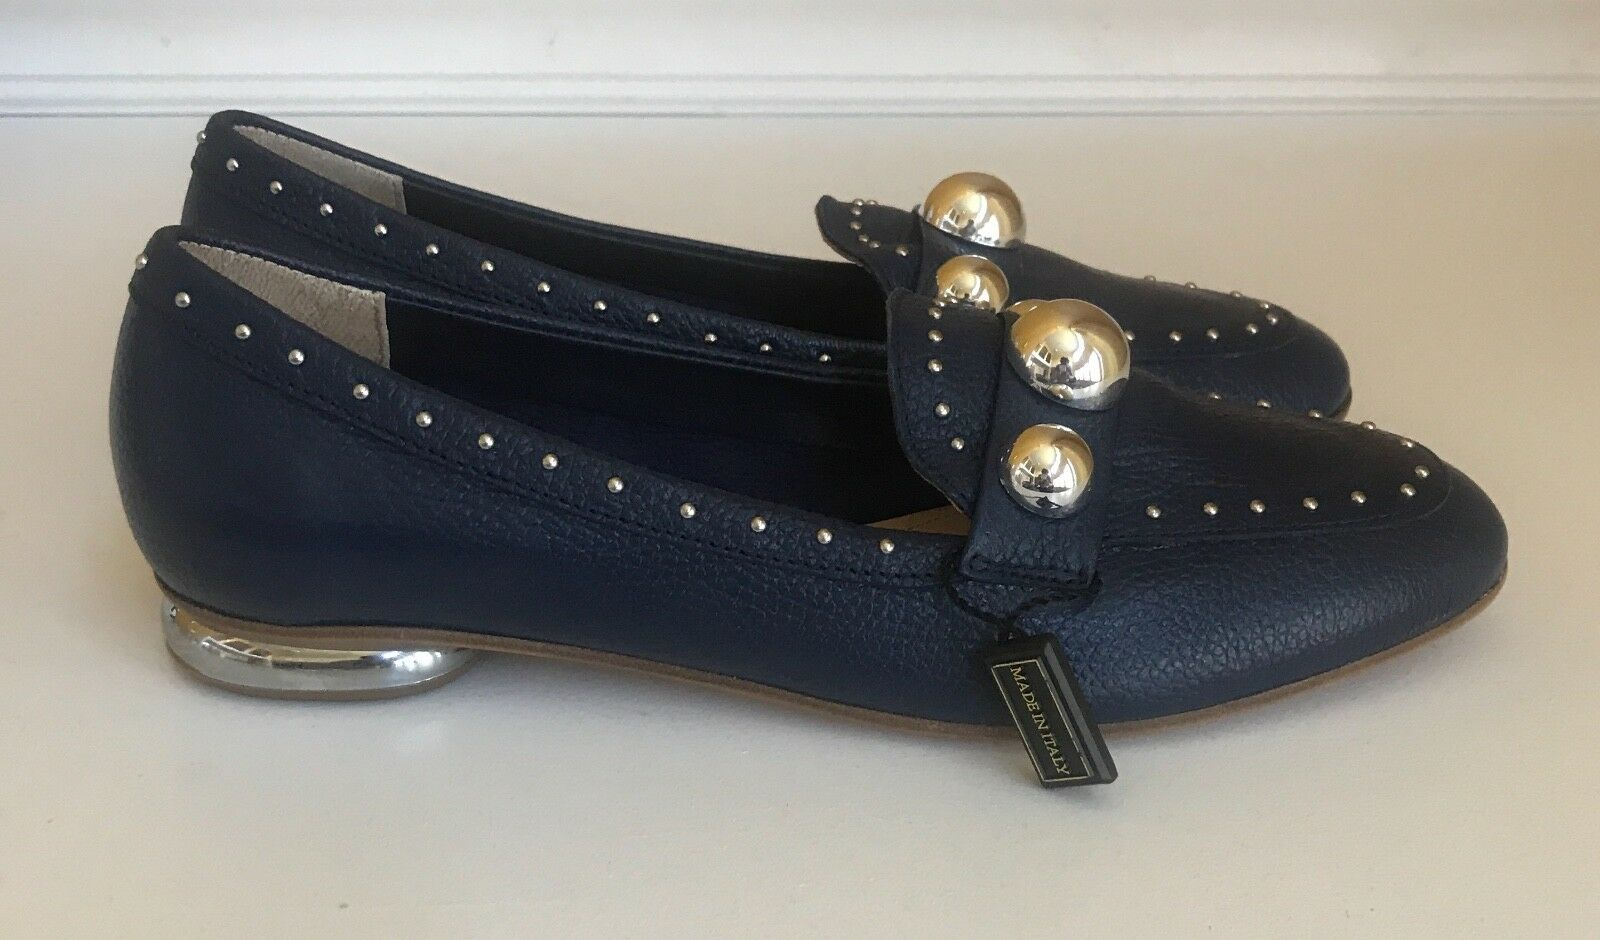 NAPOLEONI Navy Loafers With argent Studs Accent femmes femmes femmes Taille 6.5M   37 fe64a8